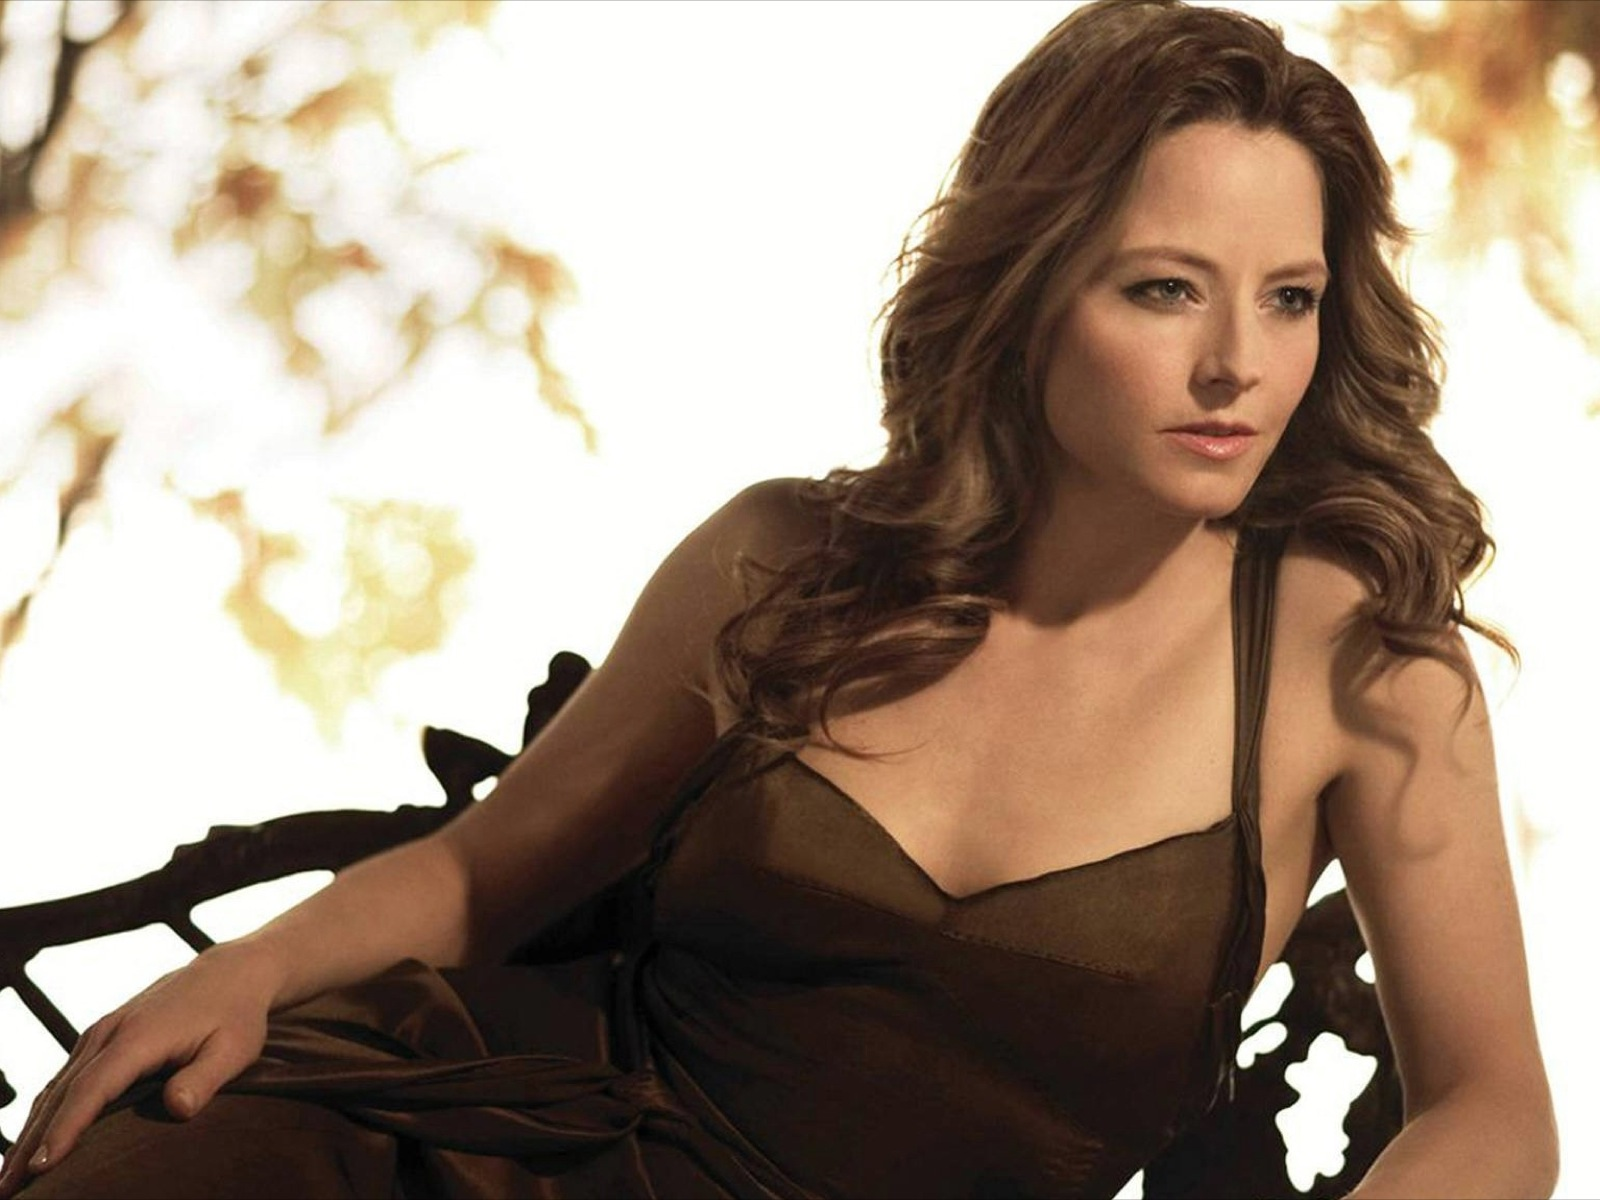 Jodie Foster Profile And Beautiful Latest Hot Wallpaper